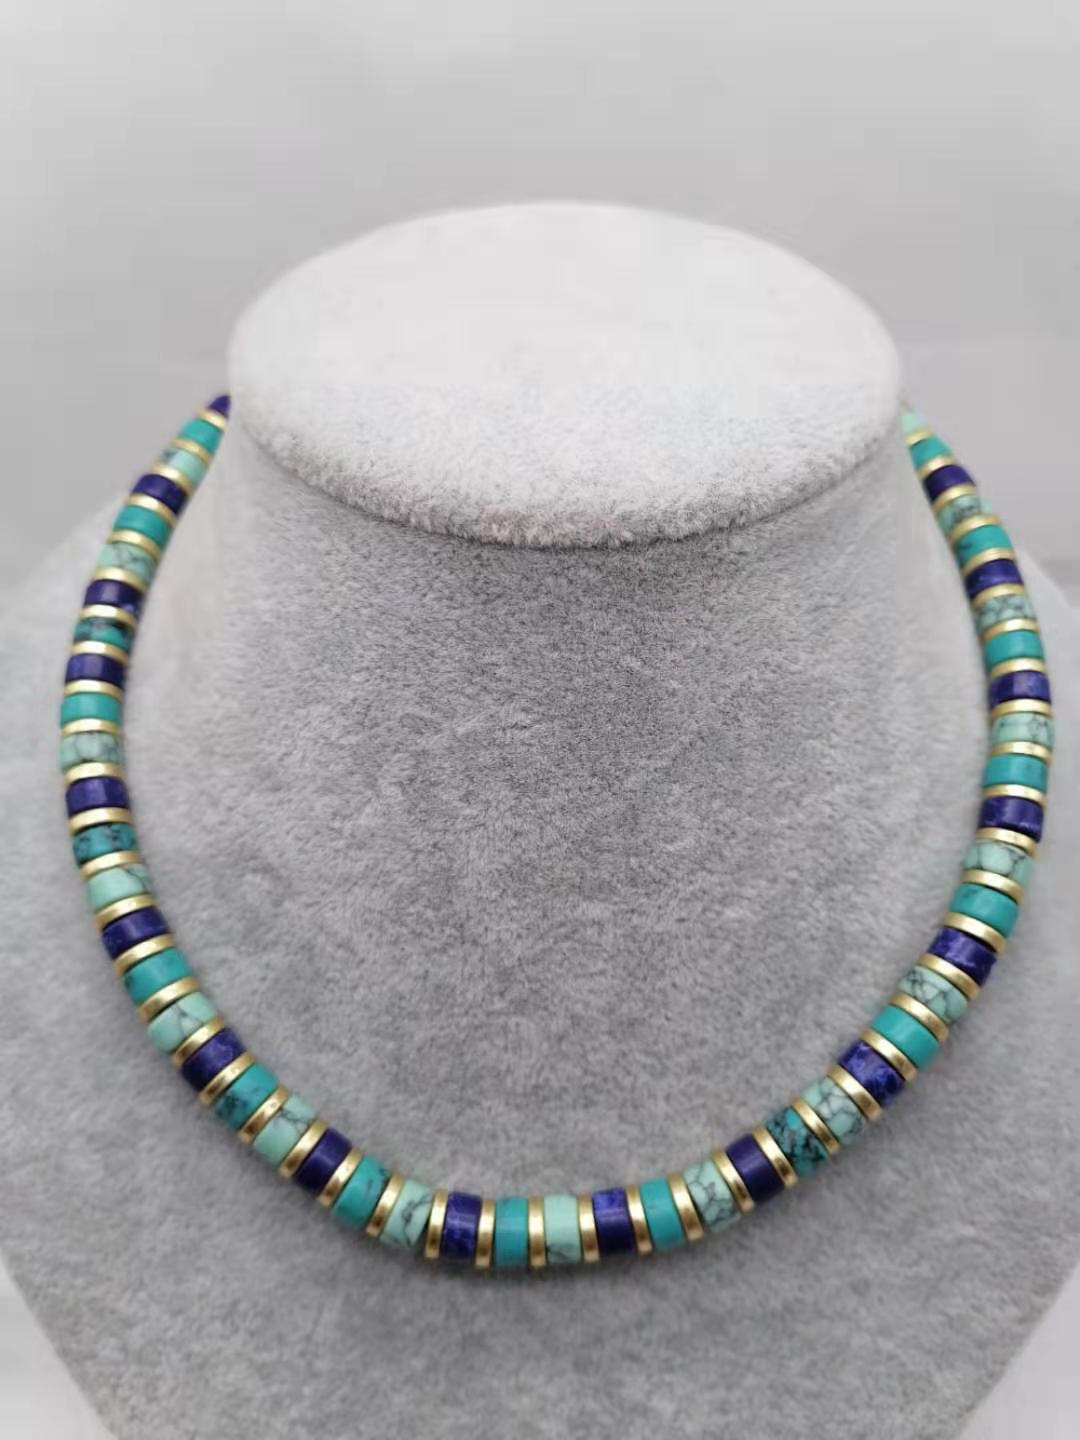 Qingdao Lihang jewelry MMA retro Western VIN stage Turquoise Set Necklace